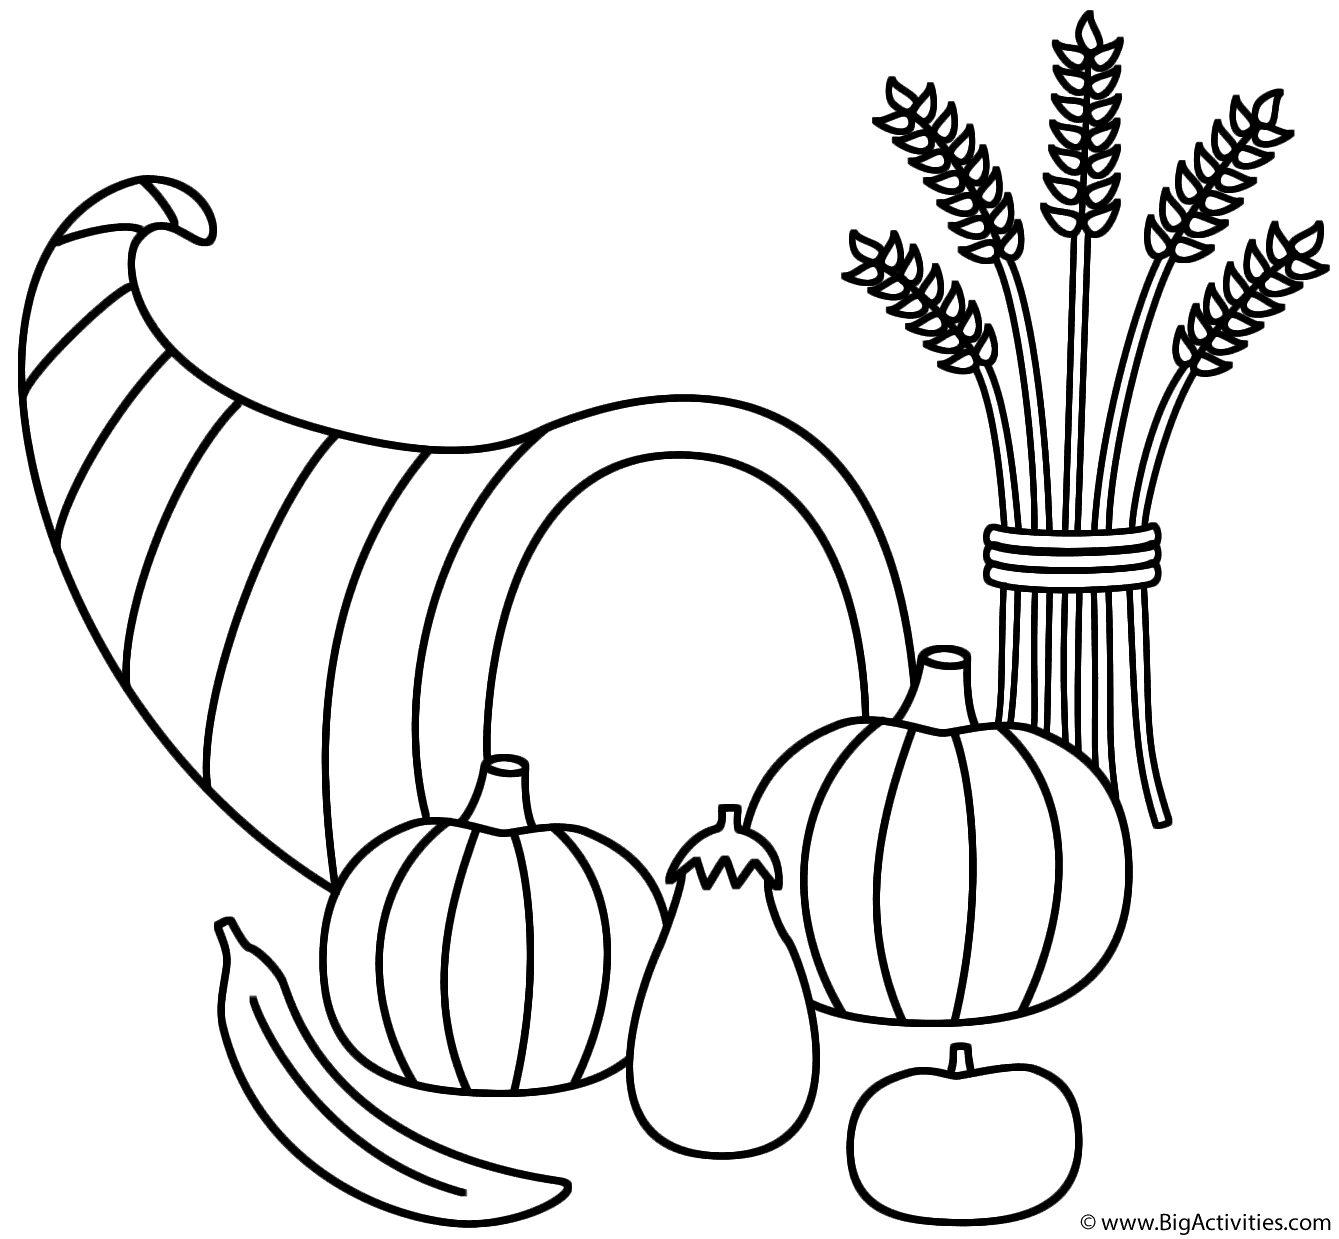 Wheat Coloring Page At Getcolorings